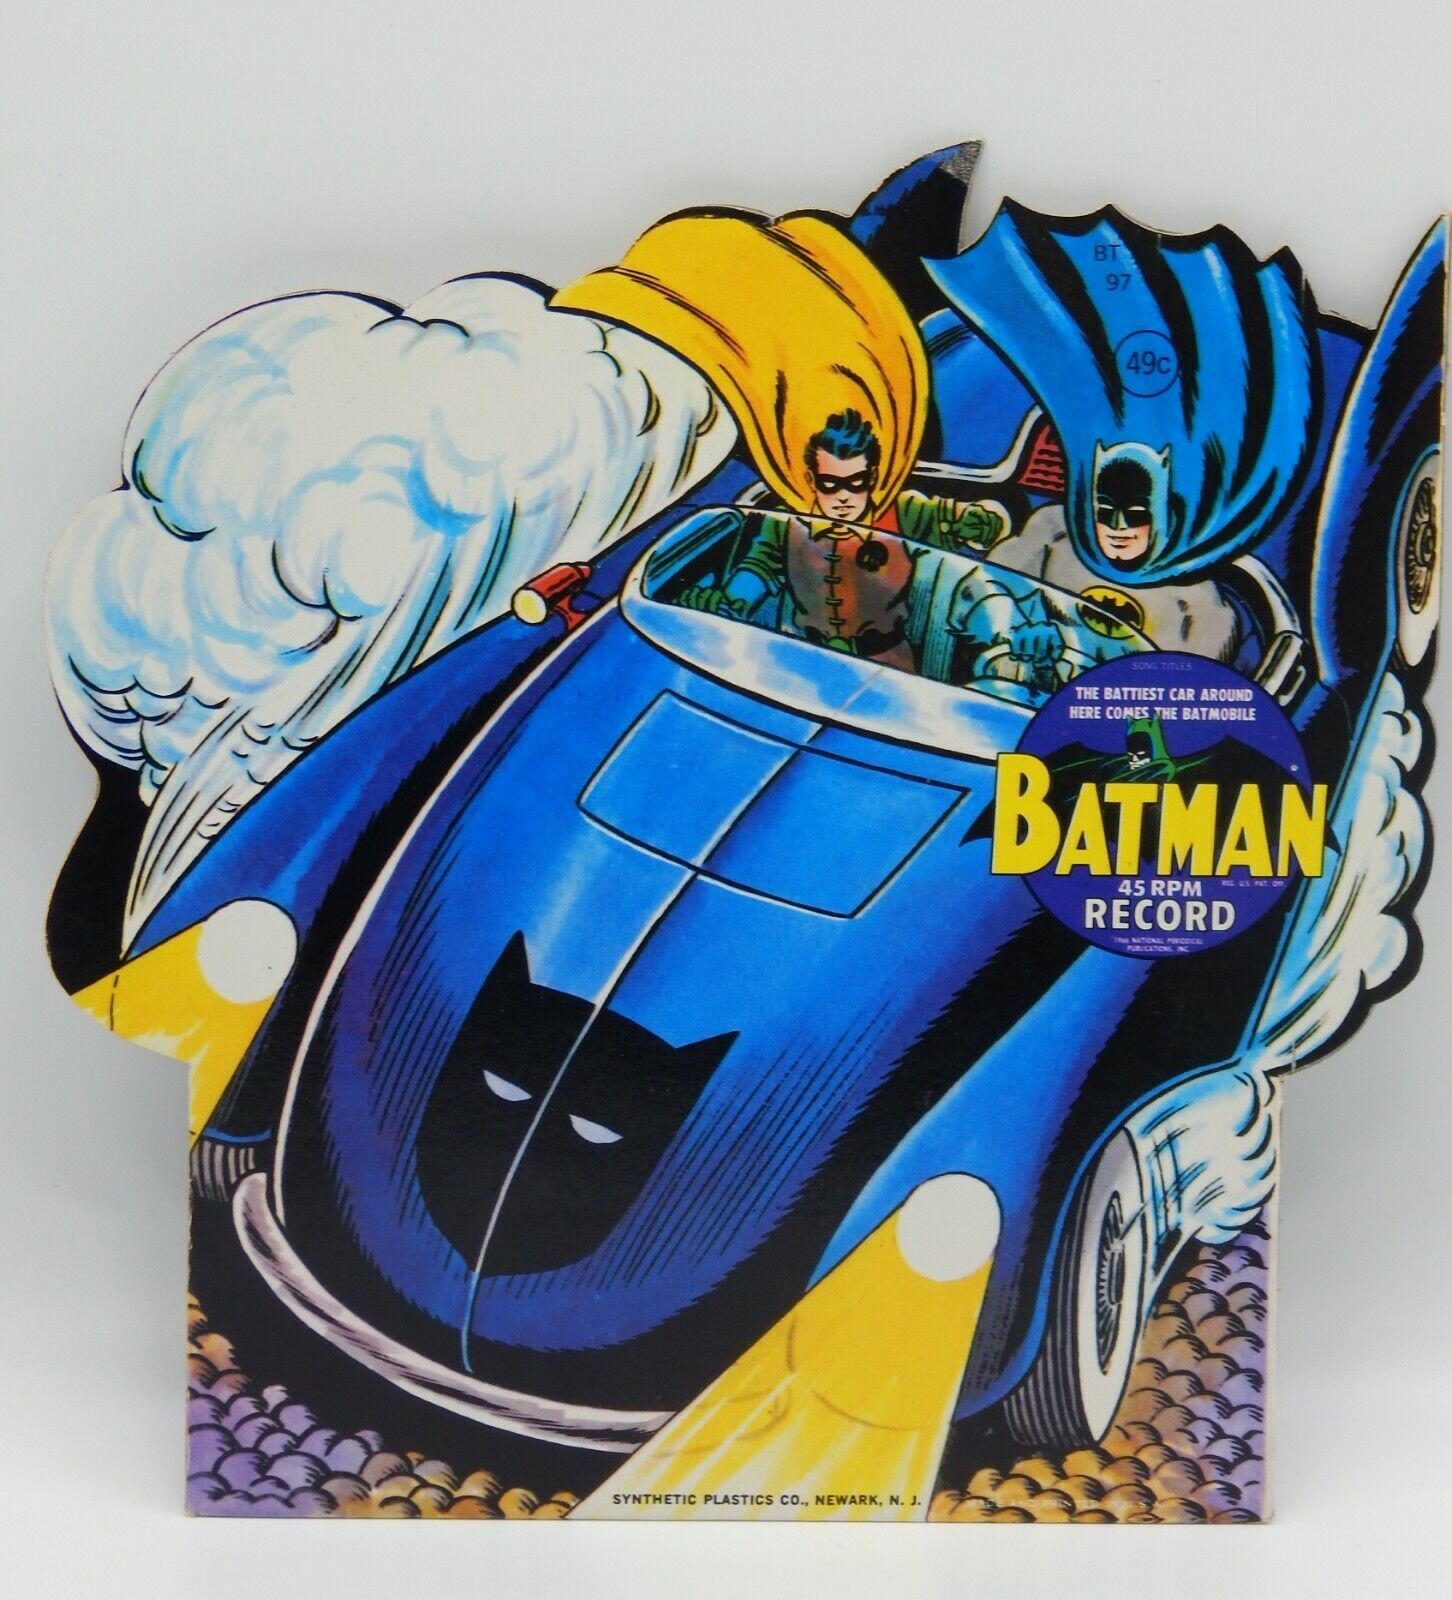 Vintage BATMOBILE 45 rpm record diecut picture sleeve PS 1966 UNUSED 7  Batman